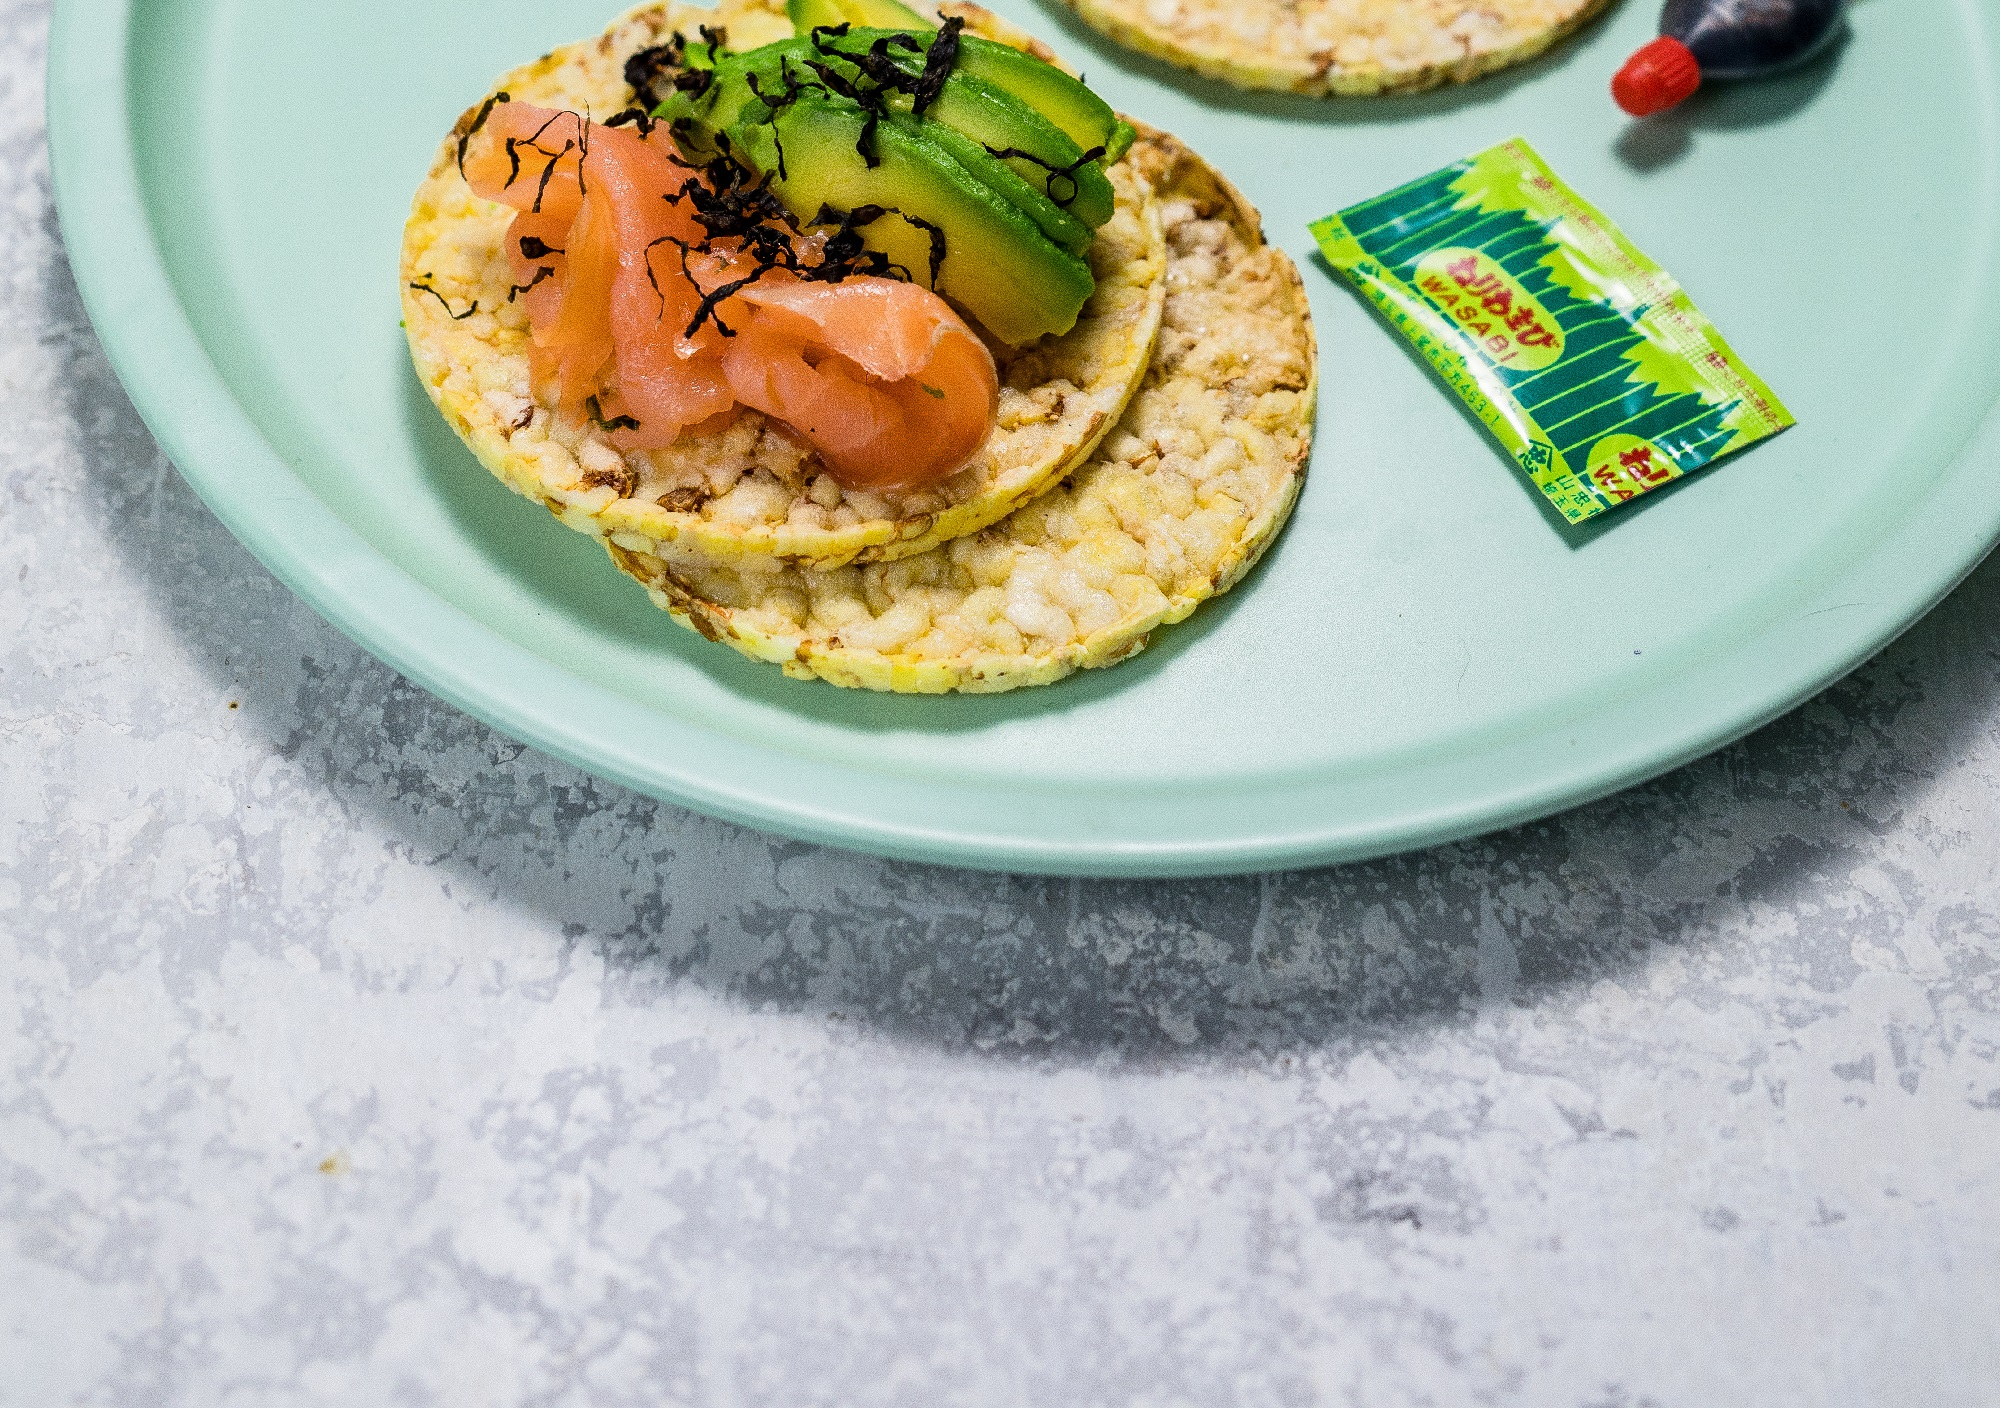 Salmon, Nori Flakes & Avocado on CORN THINS slices for lunch